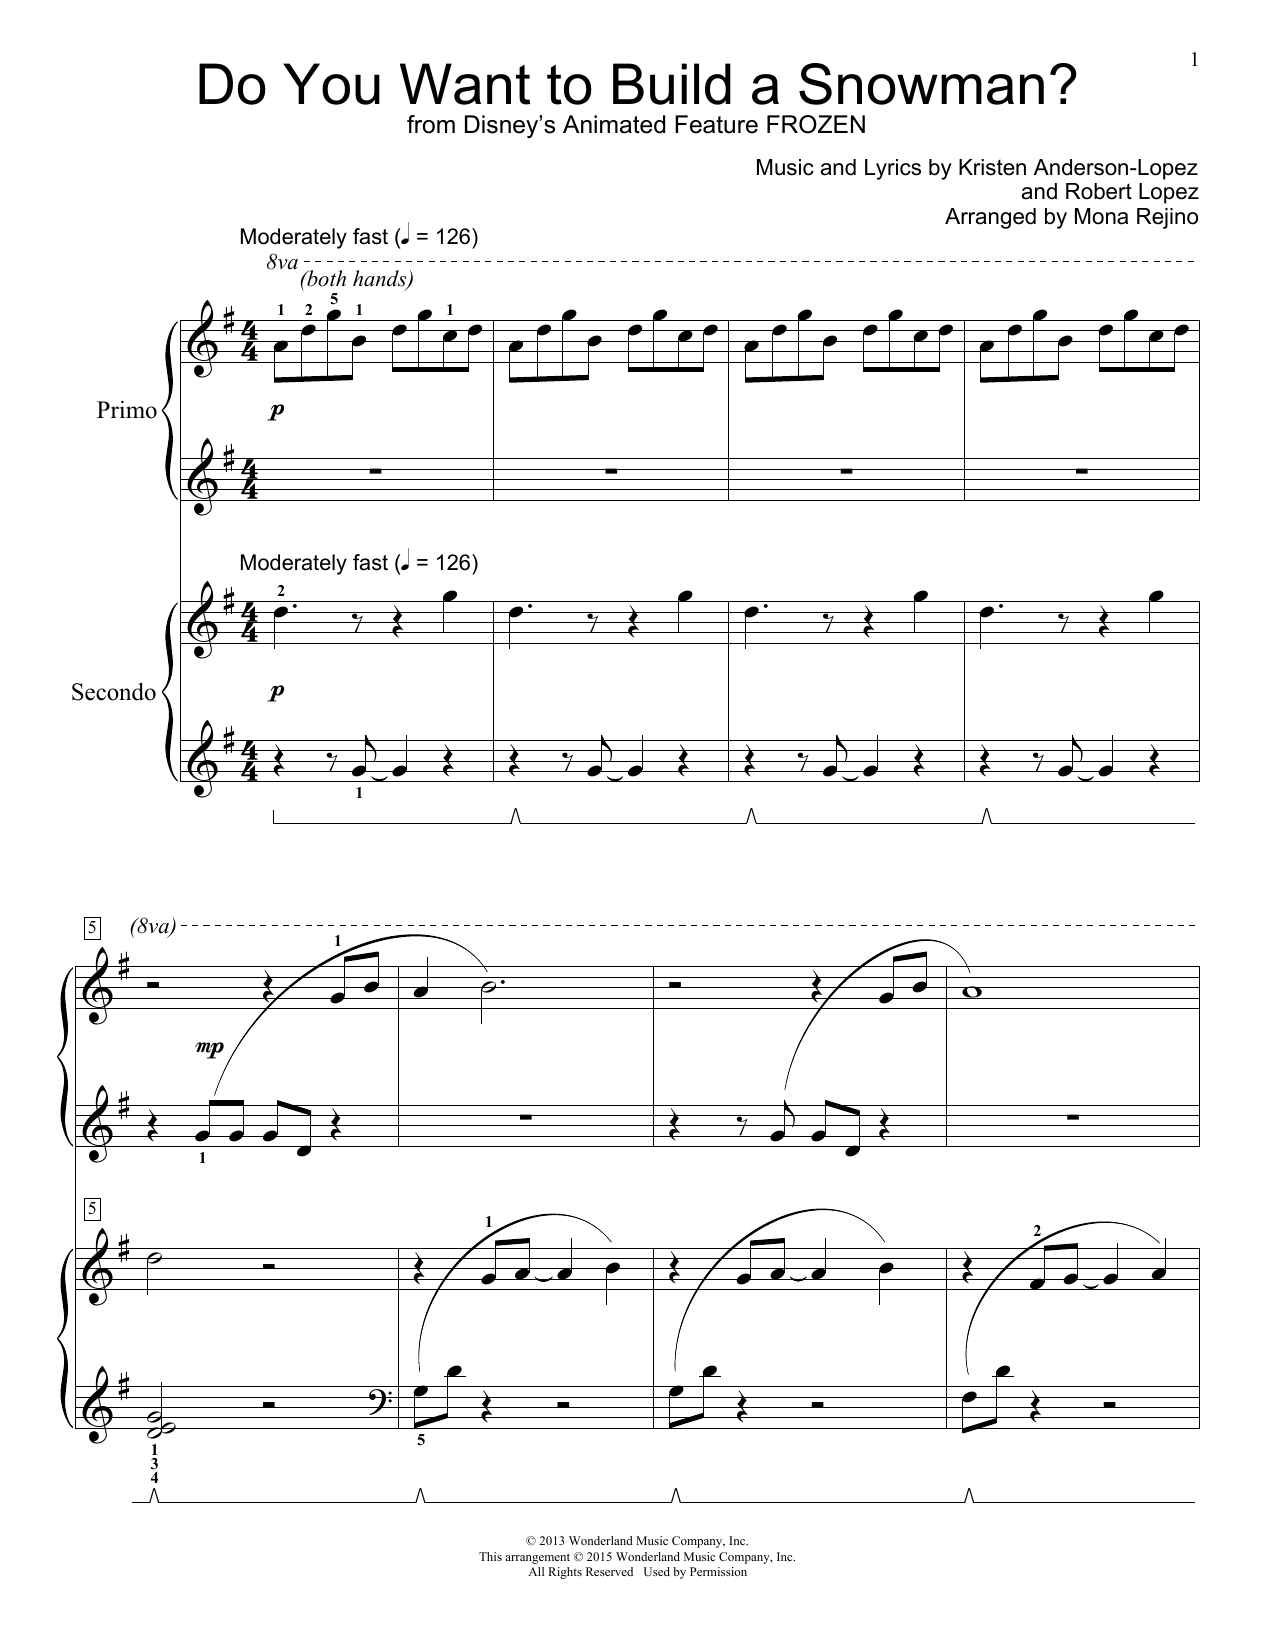 Do You Want To Build A Snowman? Sheet Music